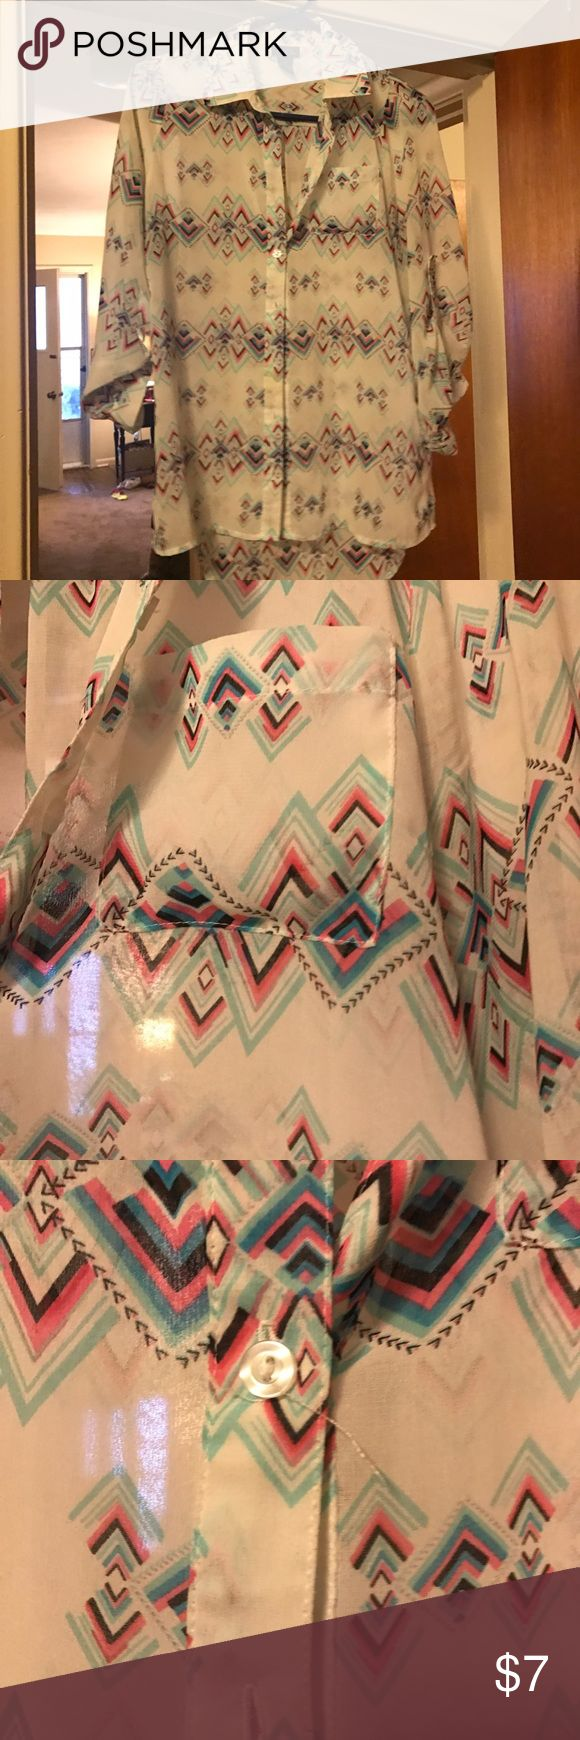 Rue21 Aztec Blouse Pink/Mint/Black Aztec pattern with white background. Has chest pocket. There is one button with a string getting loose (shown in picture) Rue 21 Tops Blouses